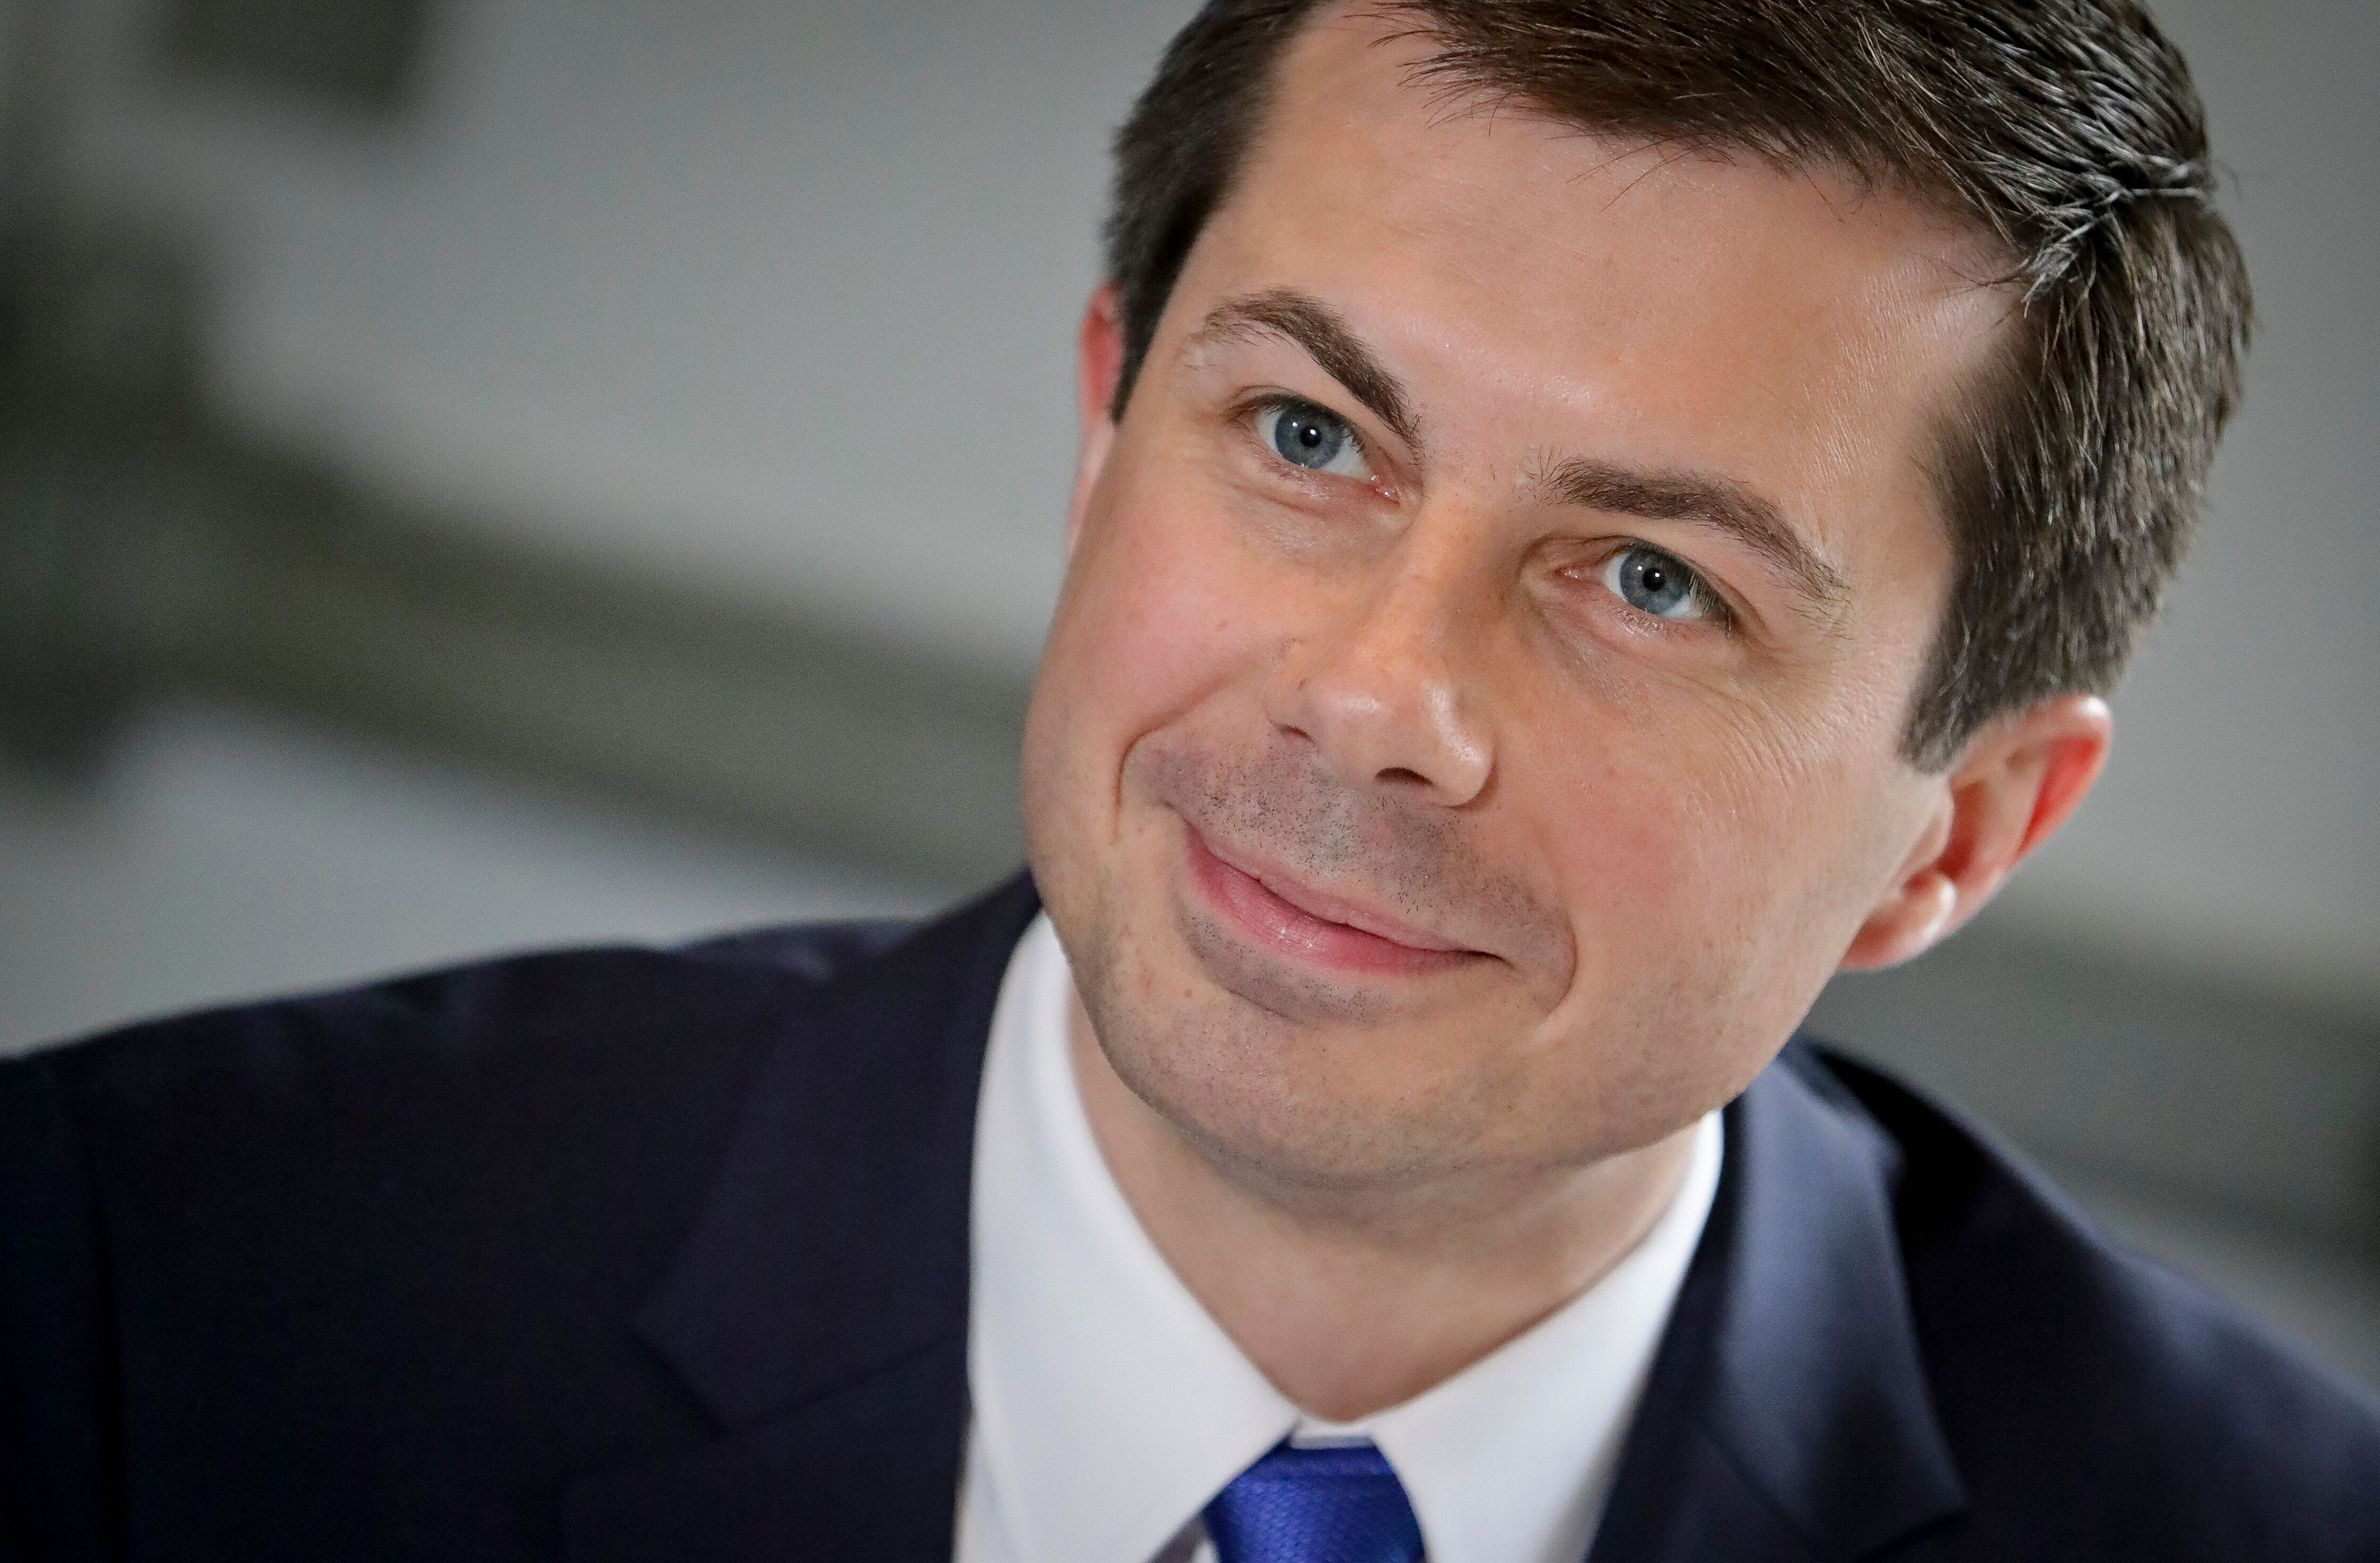 In this April 29, 2019, photo, Democratic presidential candidate Mayor Pete Buttigieg, from South Bend, Ind.,, listens during a lunch meeting with civil rights leader Rev. Al Sharpton at Sylvia's Restaurant in Harlem neighborhood of New York. Buttigieg is making a new, concerted effort to appeal to African American voters and put behind him criticism of his record on race.  (AP Photo/Bebeto Matthews, Pool)